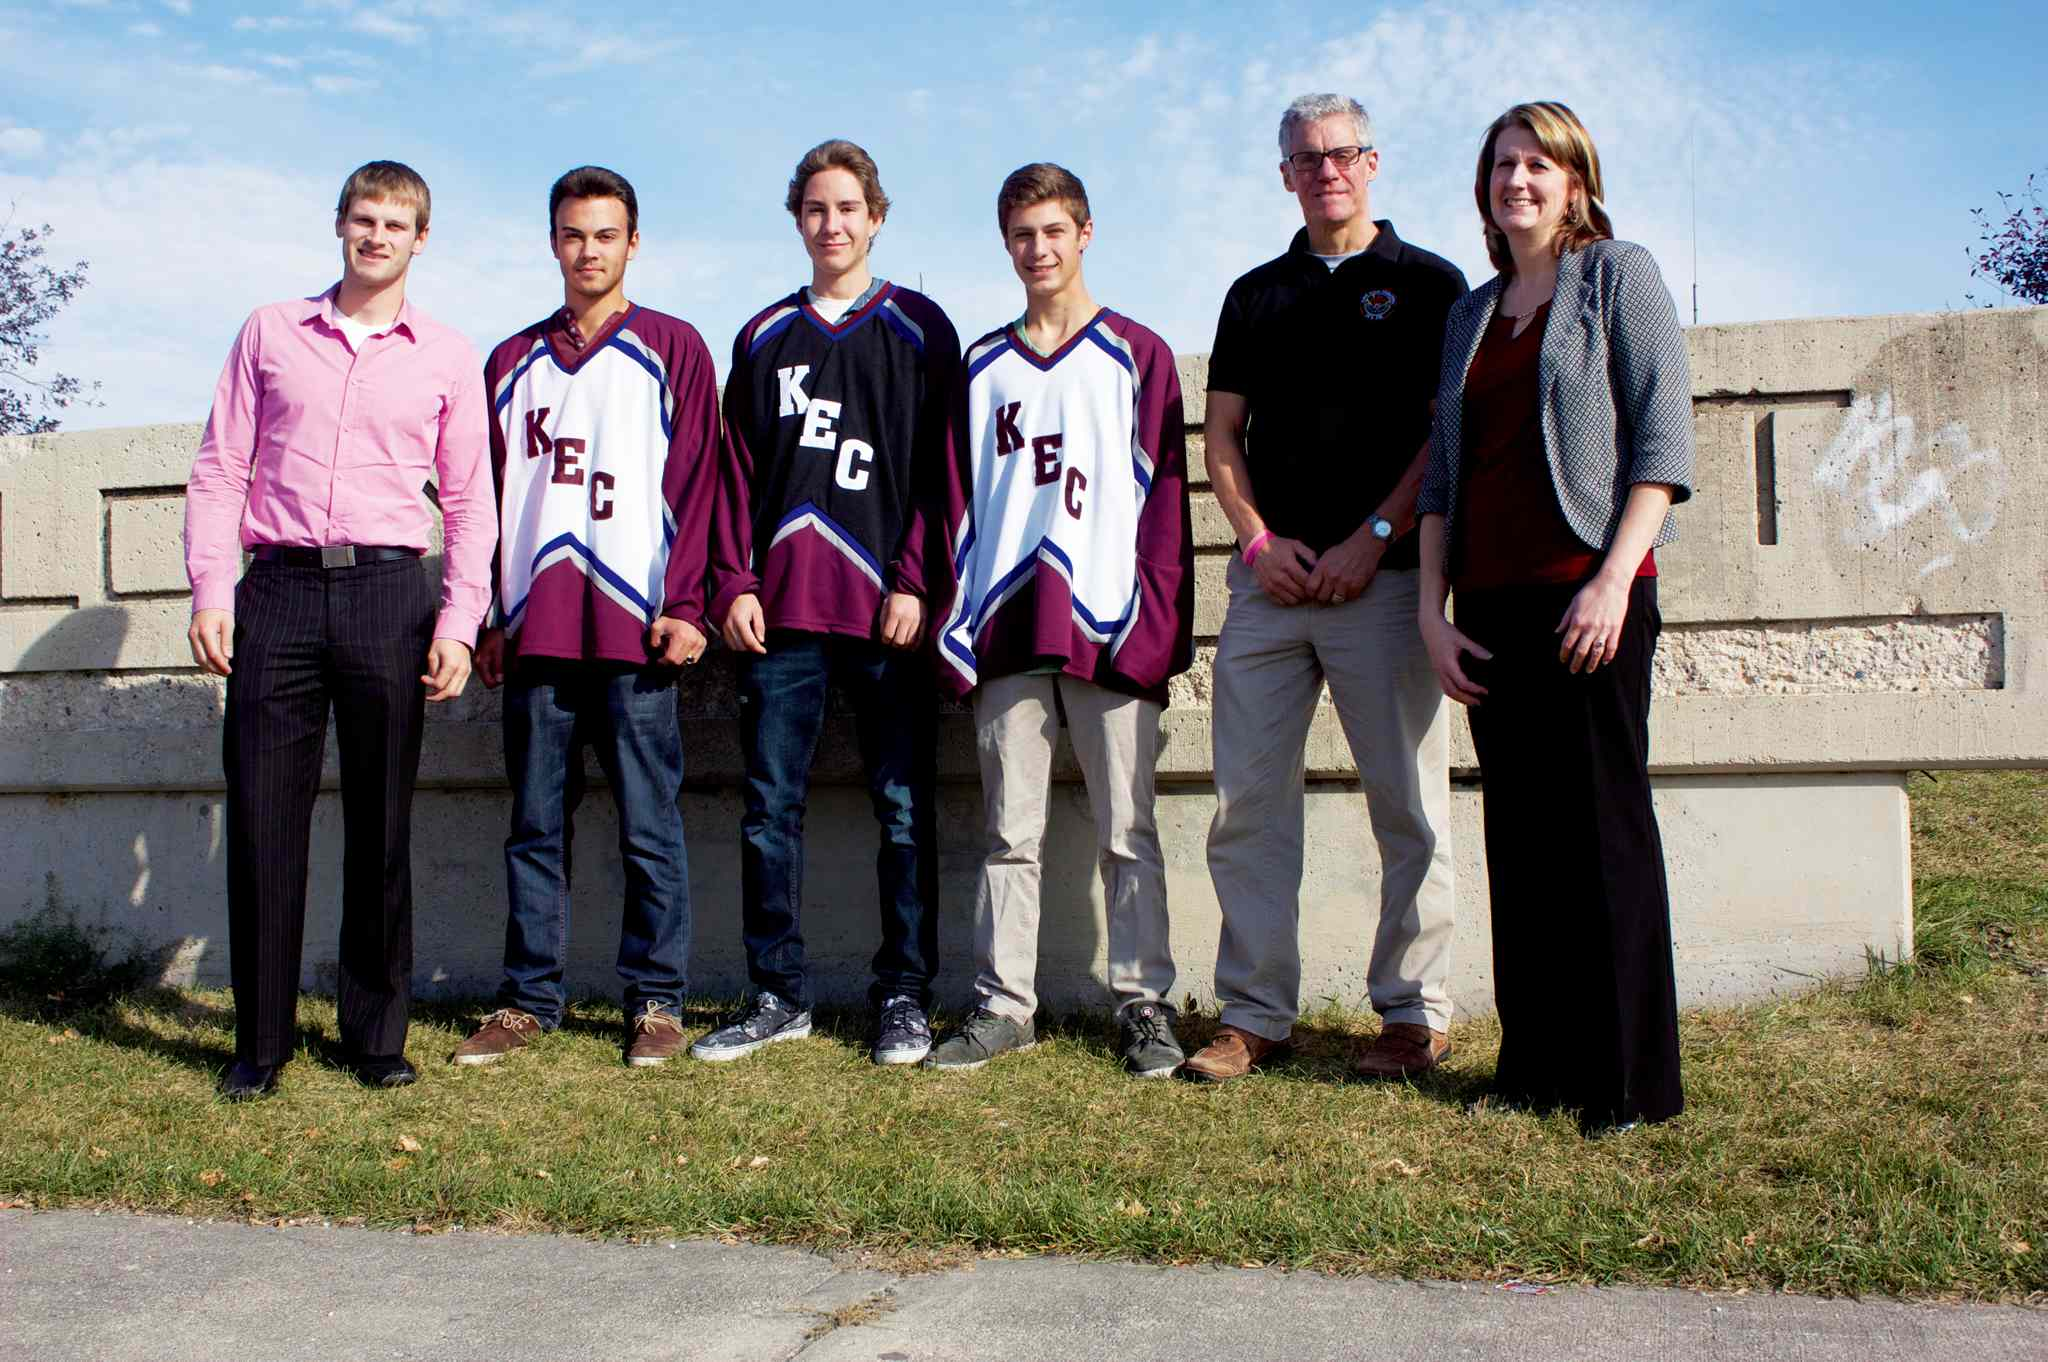 Kildonan-East Reivers coach Luke Klassen, players Keenan Young, Braden Turman, Breydon Bromley, coach David Ramsay, and vice-principal Darlene Martineau are looking forward to icing a Winnipeg High School Hockey League team this season.